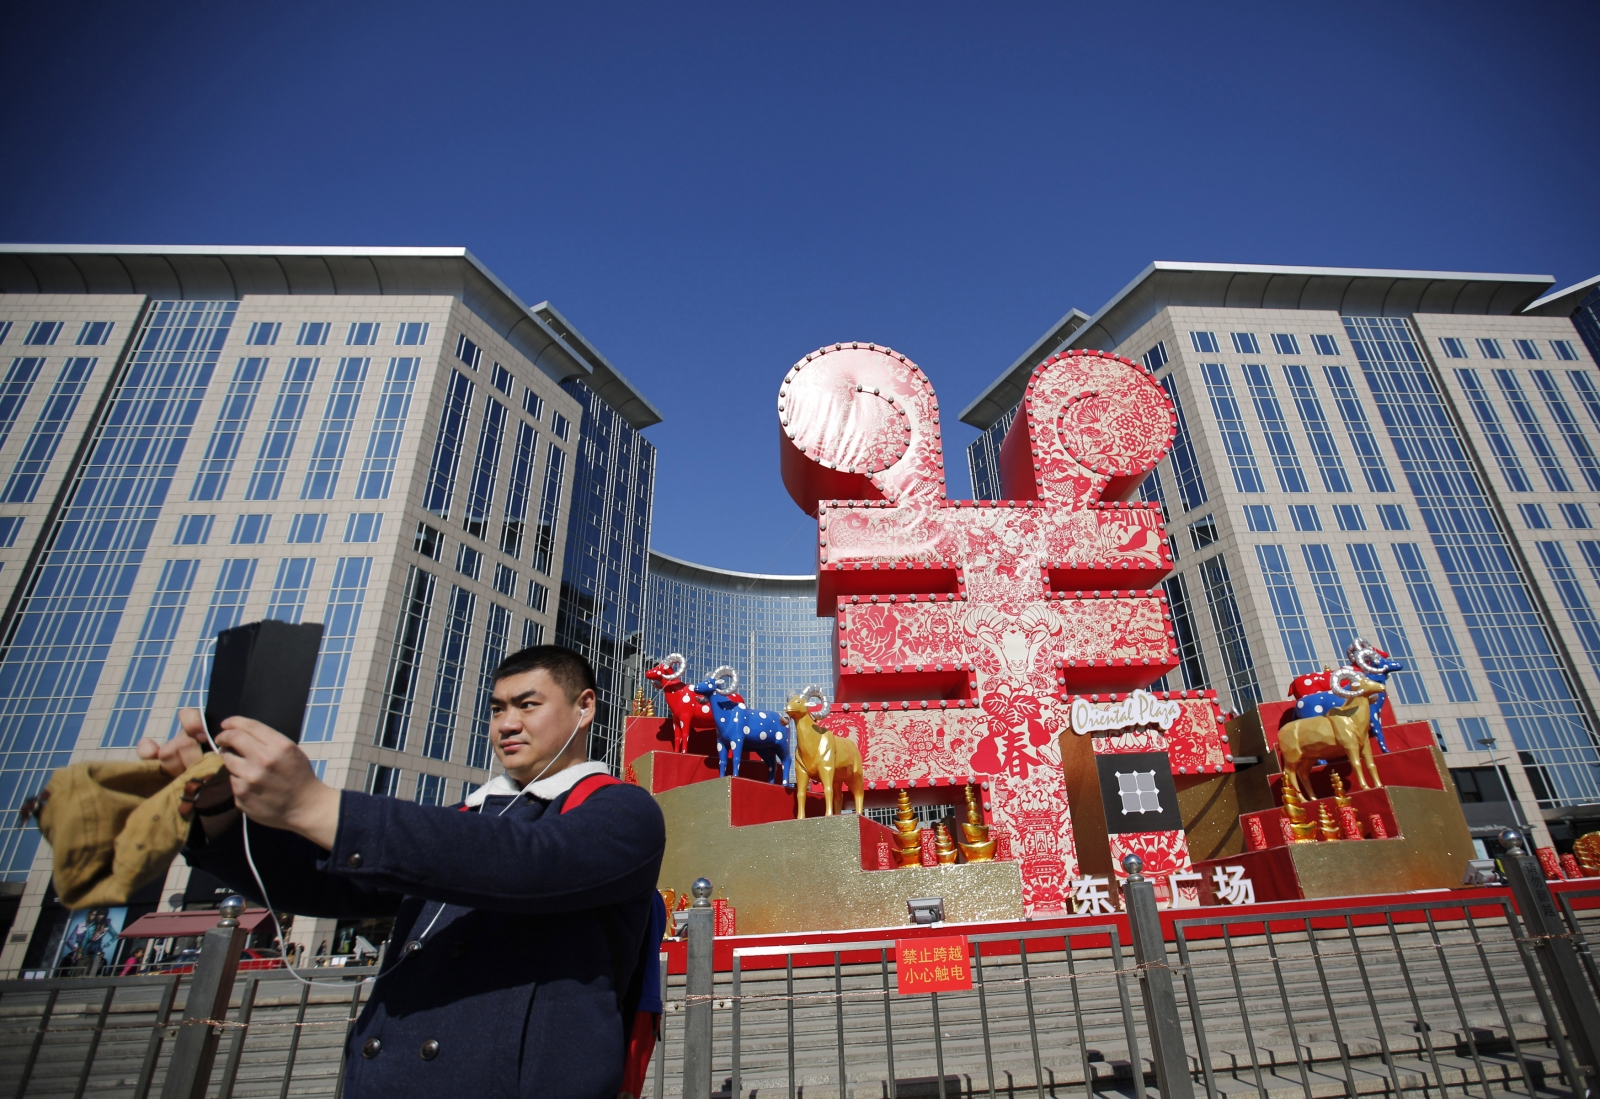 Wishing you a Happy Chinese Year of the Goat! Here's a look at what's predicted for you this year